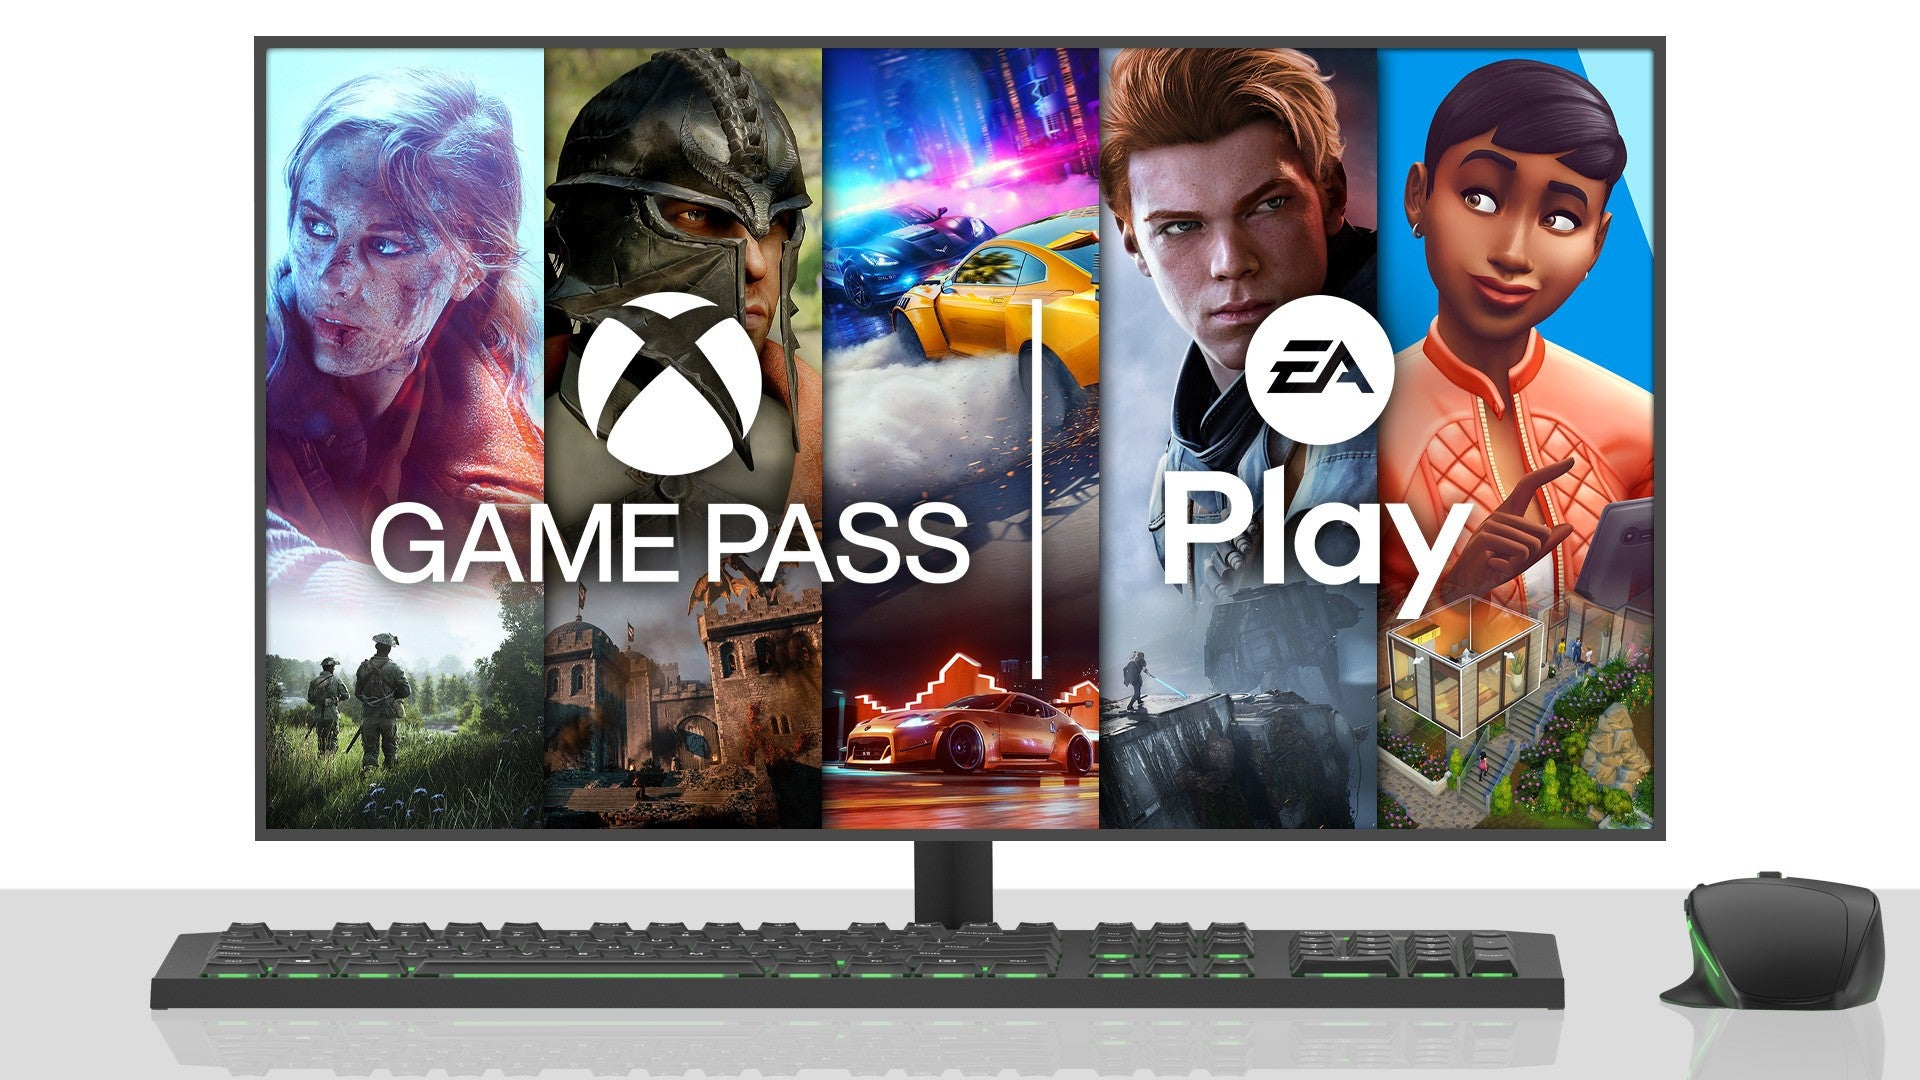 EA Play joins Xbox Game Pass PC tomorrow with 60 top titles | Trusted Reviews